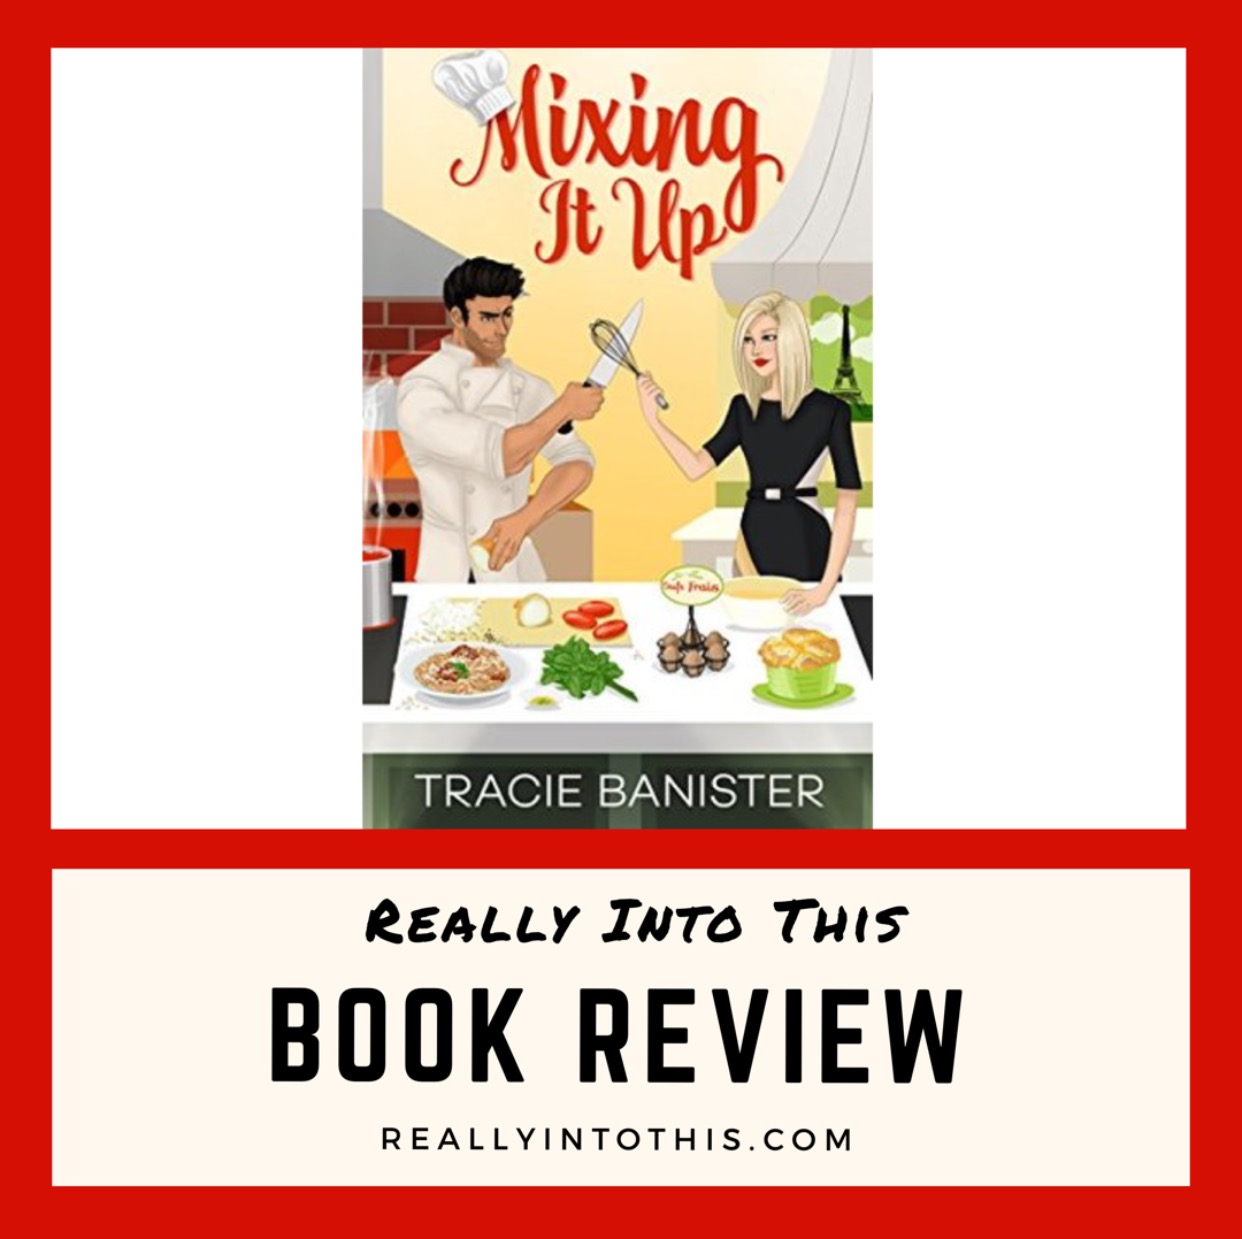 Mixing It Up by Tracie Banister Book Review Really Into This Instagram